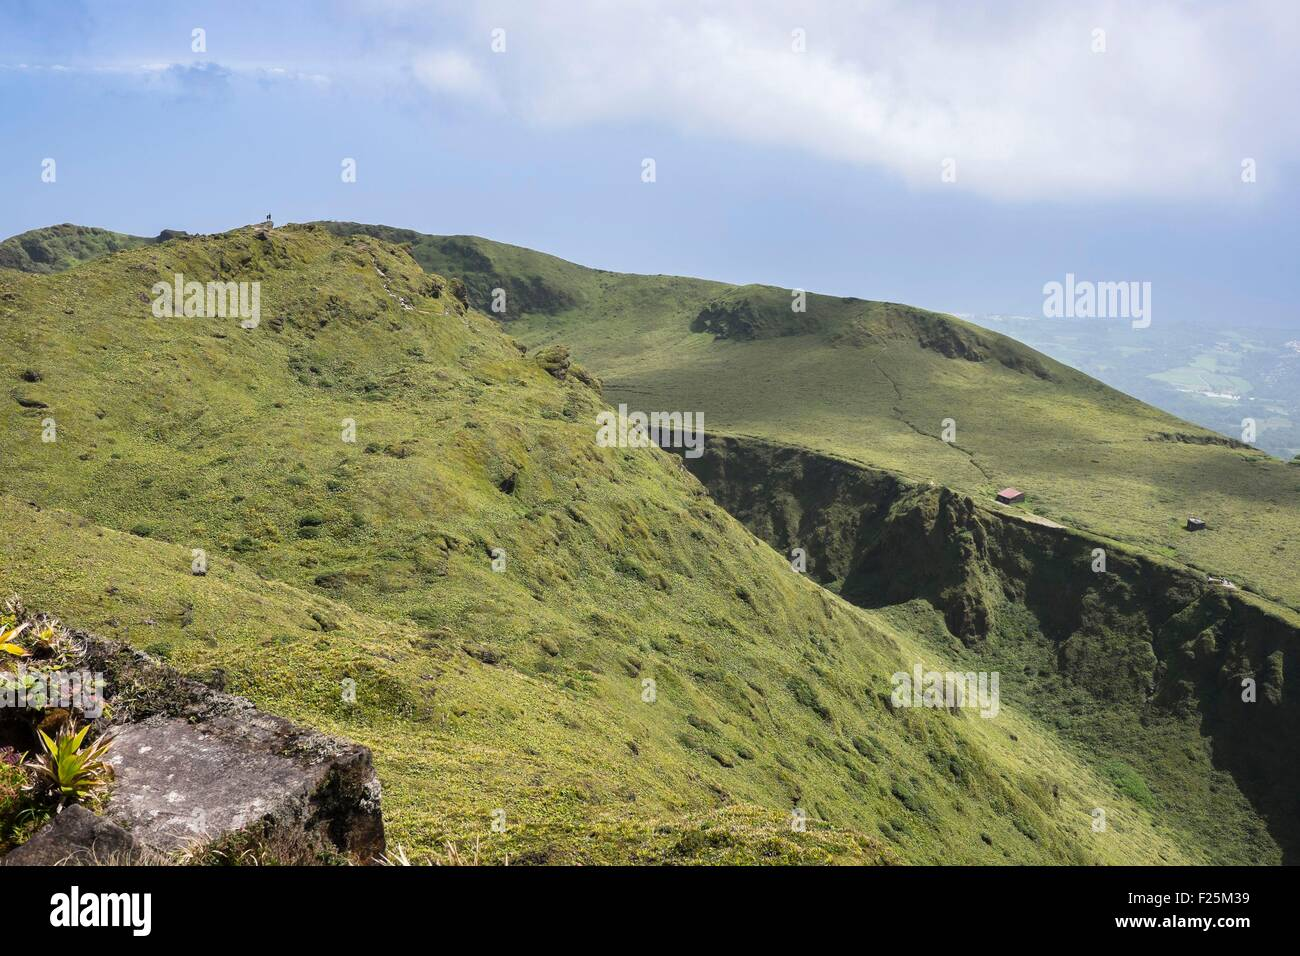 France, Martinique, Mount Pelee, active volcano at the northern end of the island - Stock Image